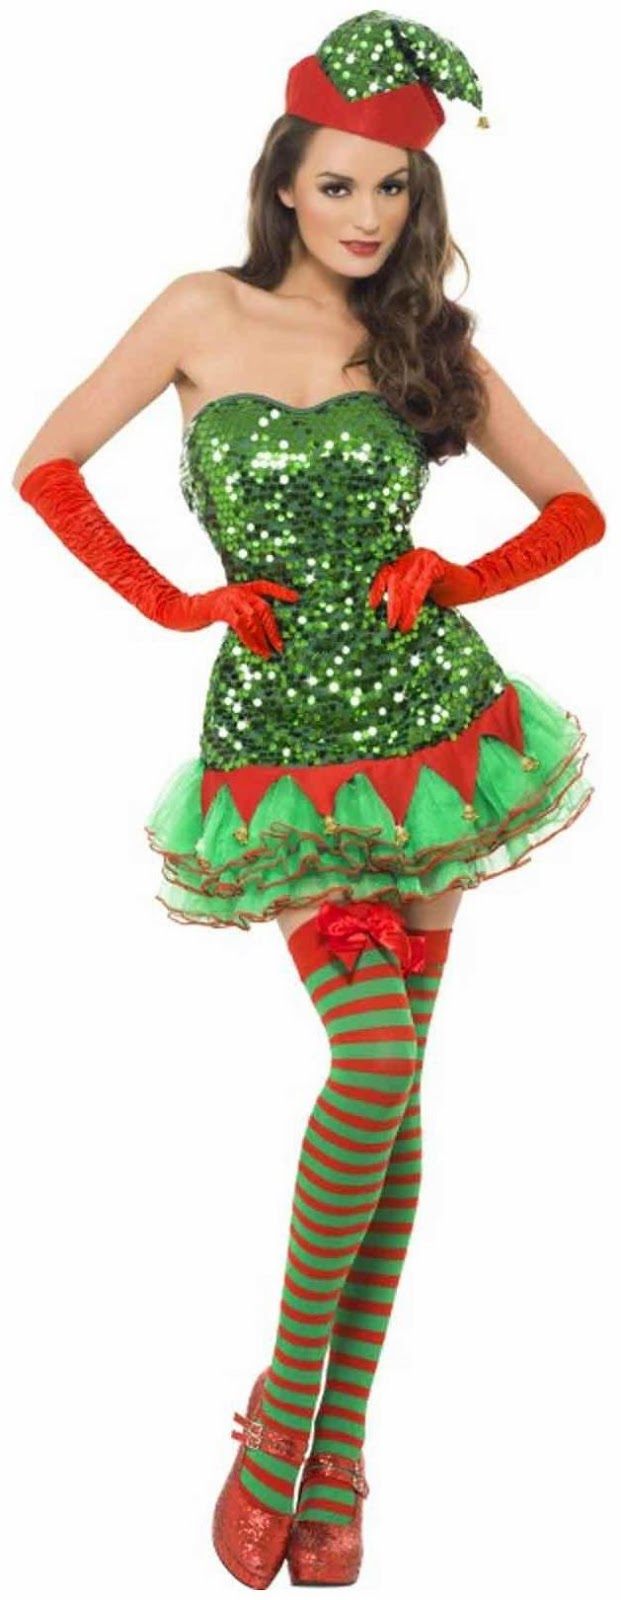 Sequin Elf Adult Costume for Christmas